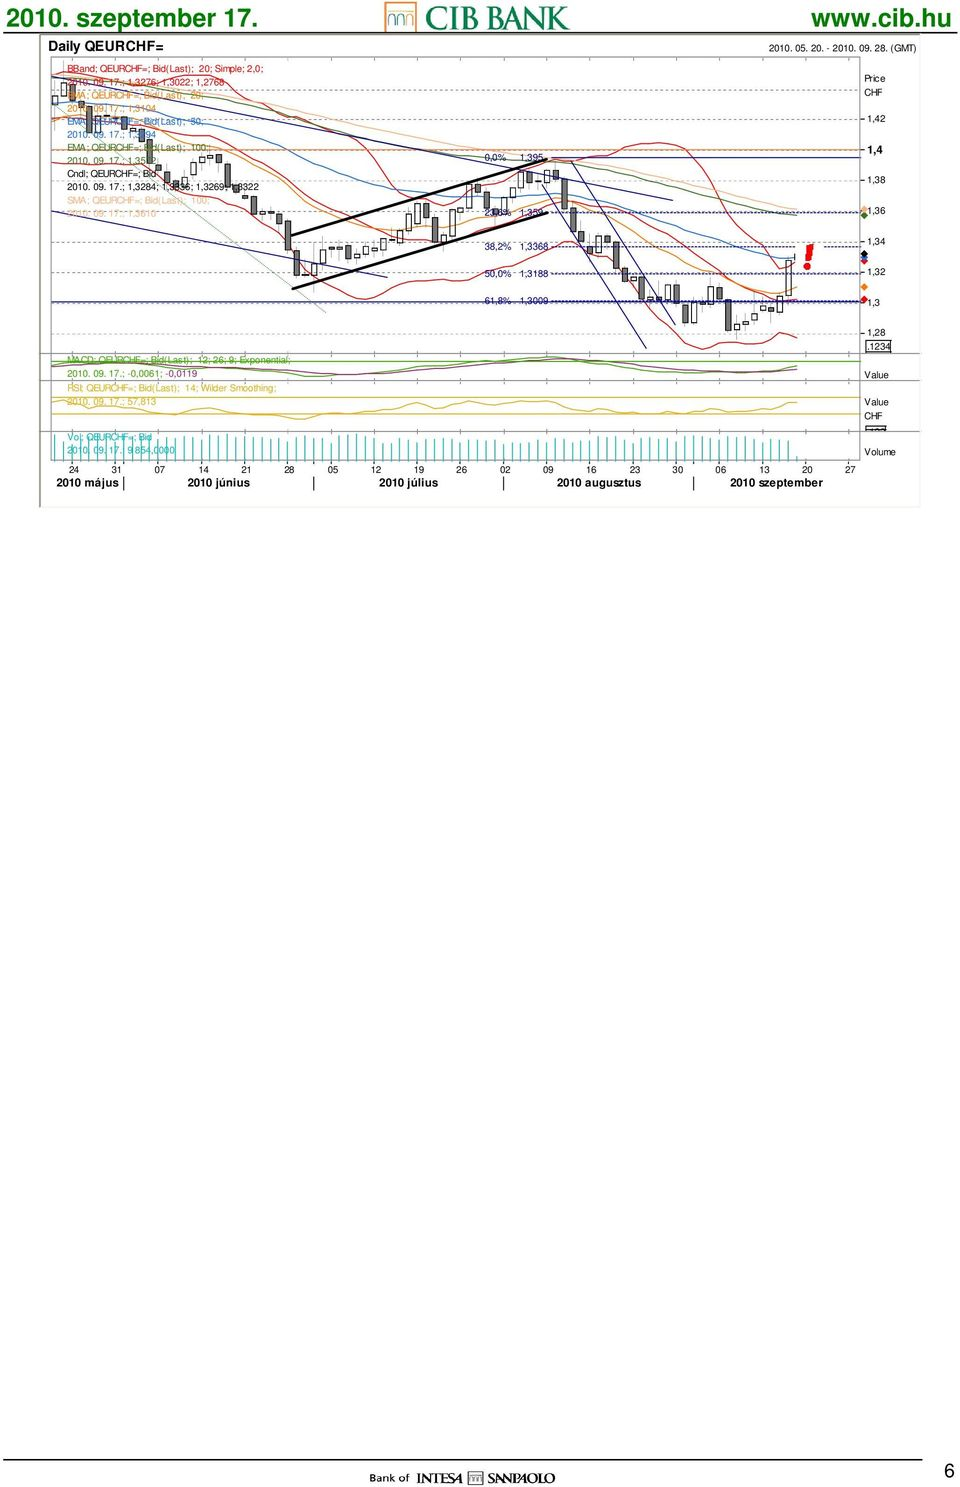 (GMT) Price CHF 1,42 1,4 1,38 1,36 38,2% 50,0% 61,8% 1,3368 88 1,3009 1,34 1,32 1,3.1234 MACD; QEURCHF=; Bid(Last); 12; 26; 9; Exponential; 2010. 09. 17.